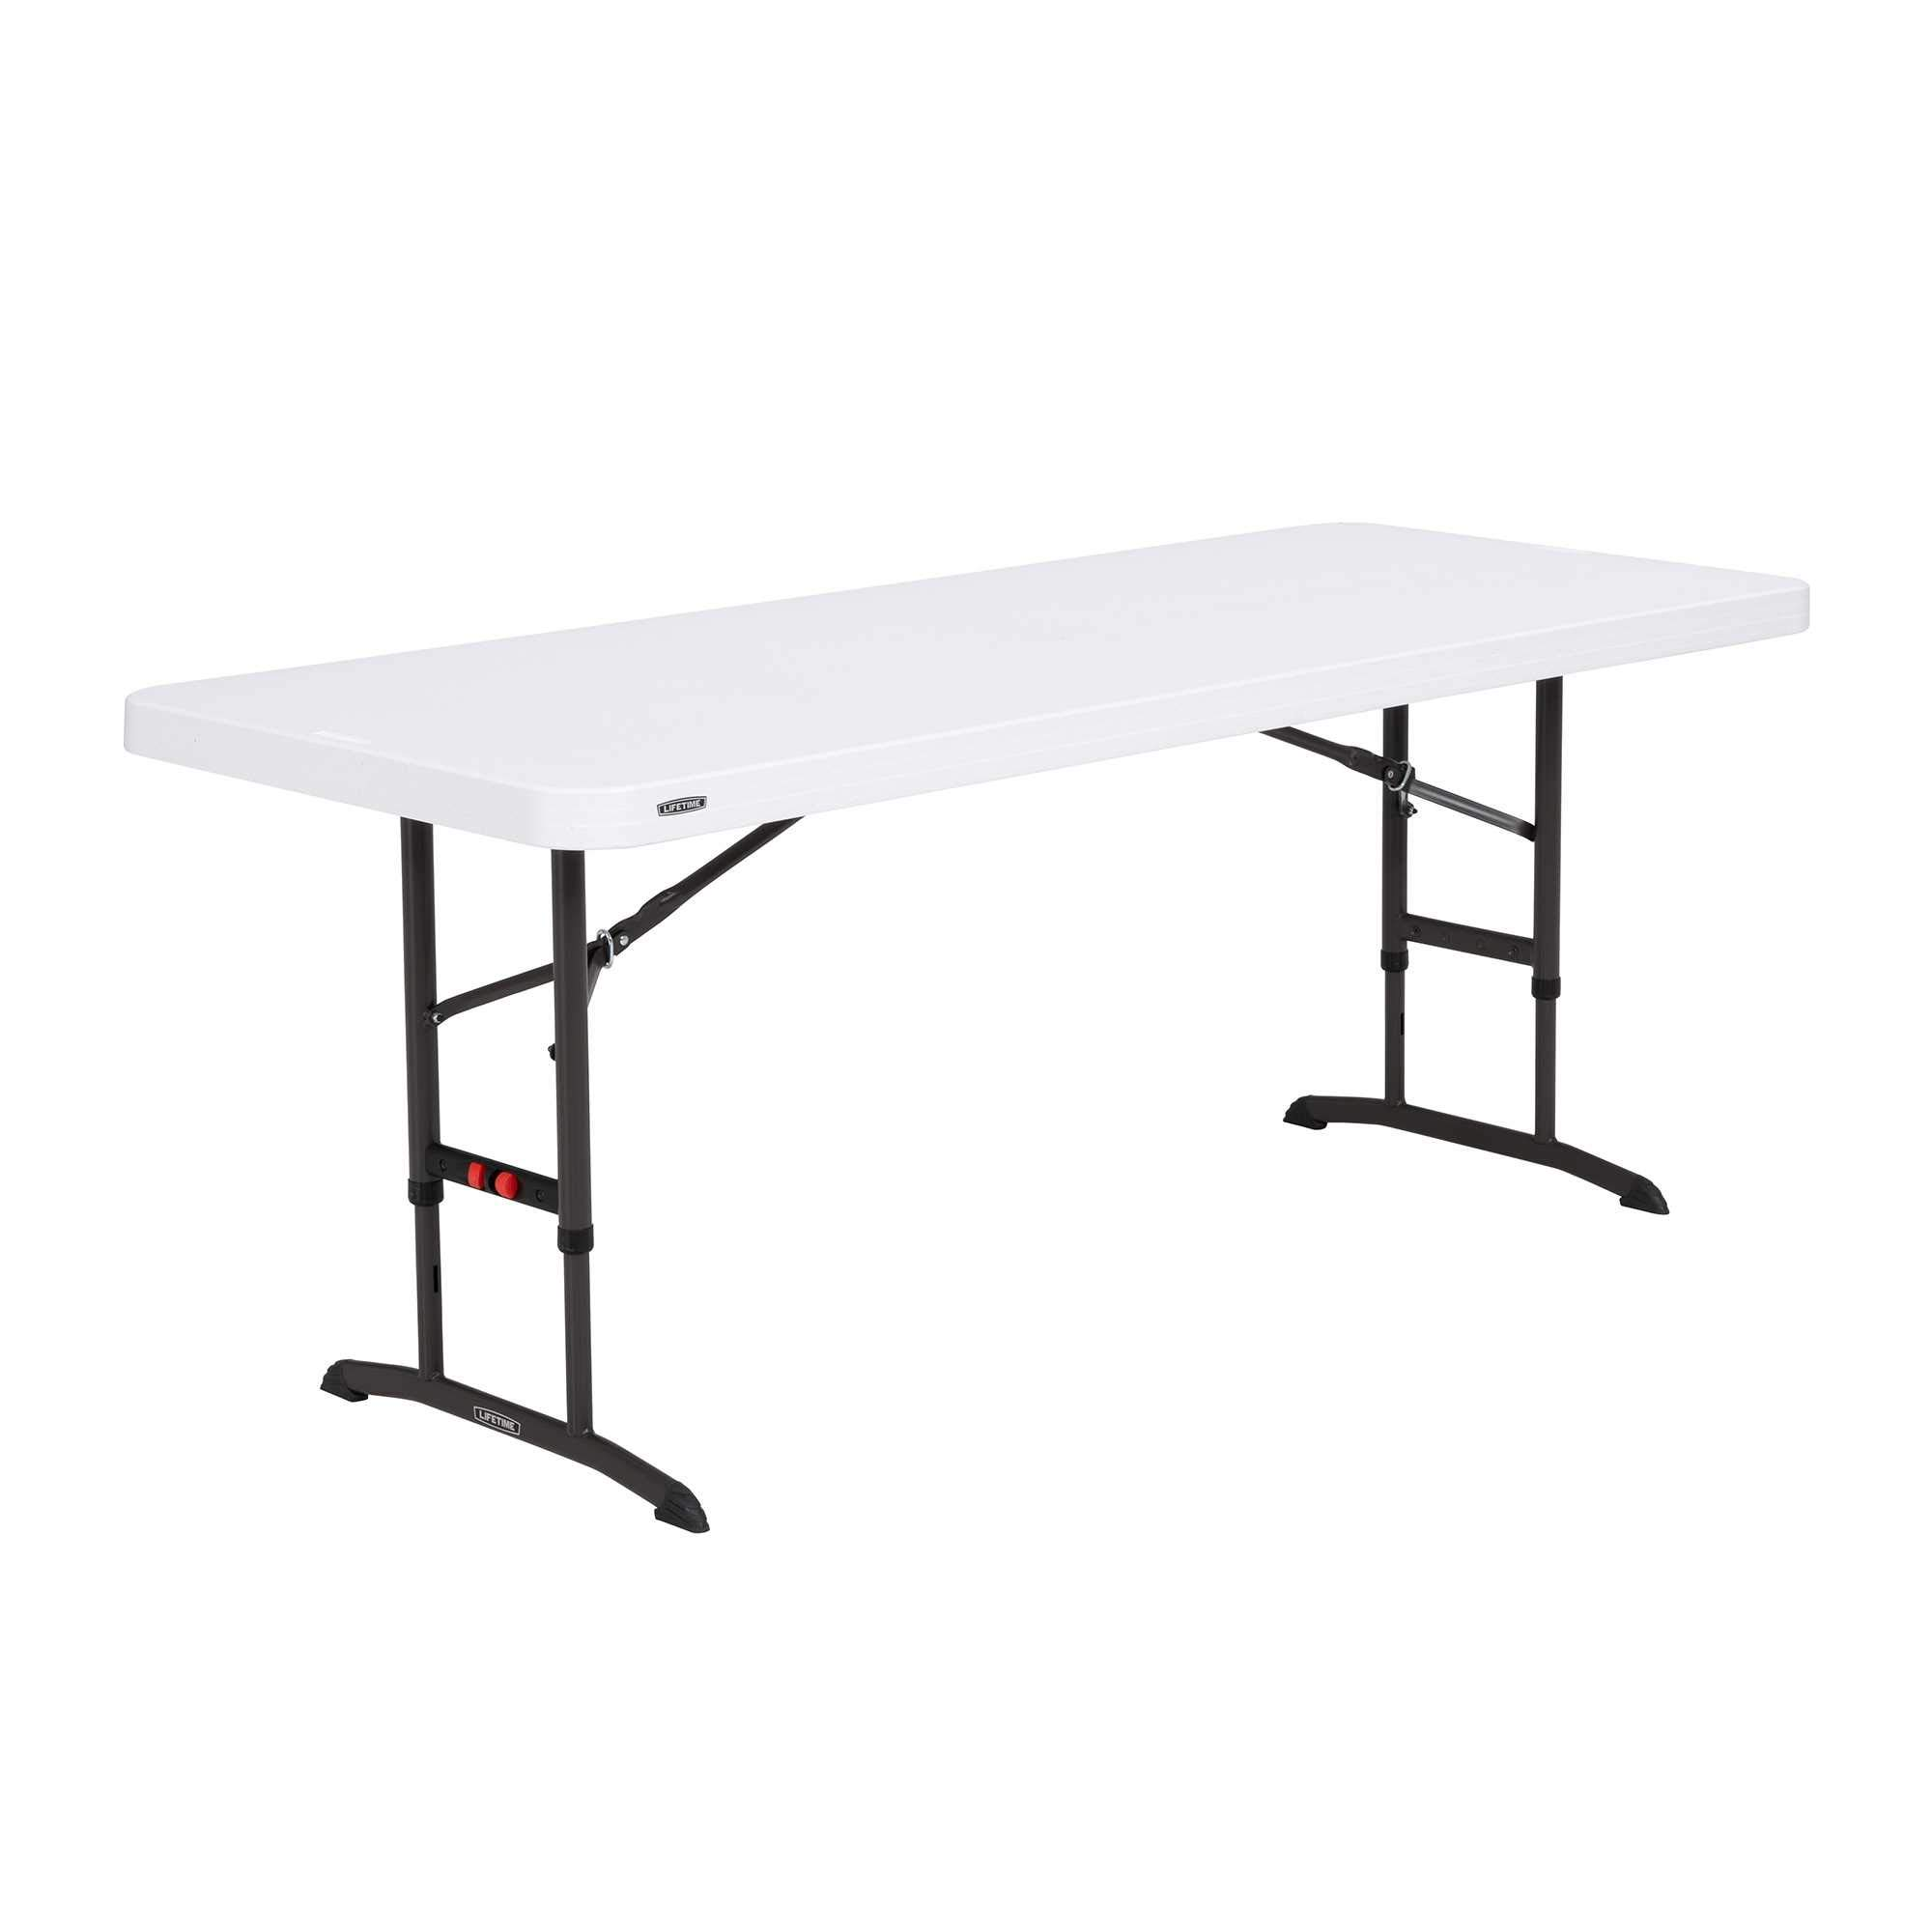 Lifetime 80752 Commercial Adjustable Height Folding Table, 6-Foot, White Granite by Lifetime